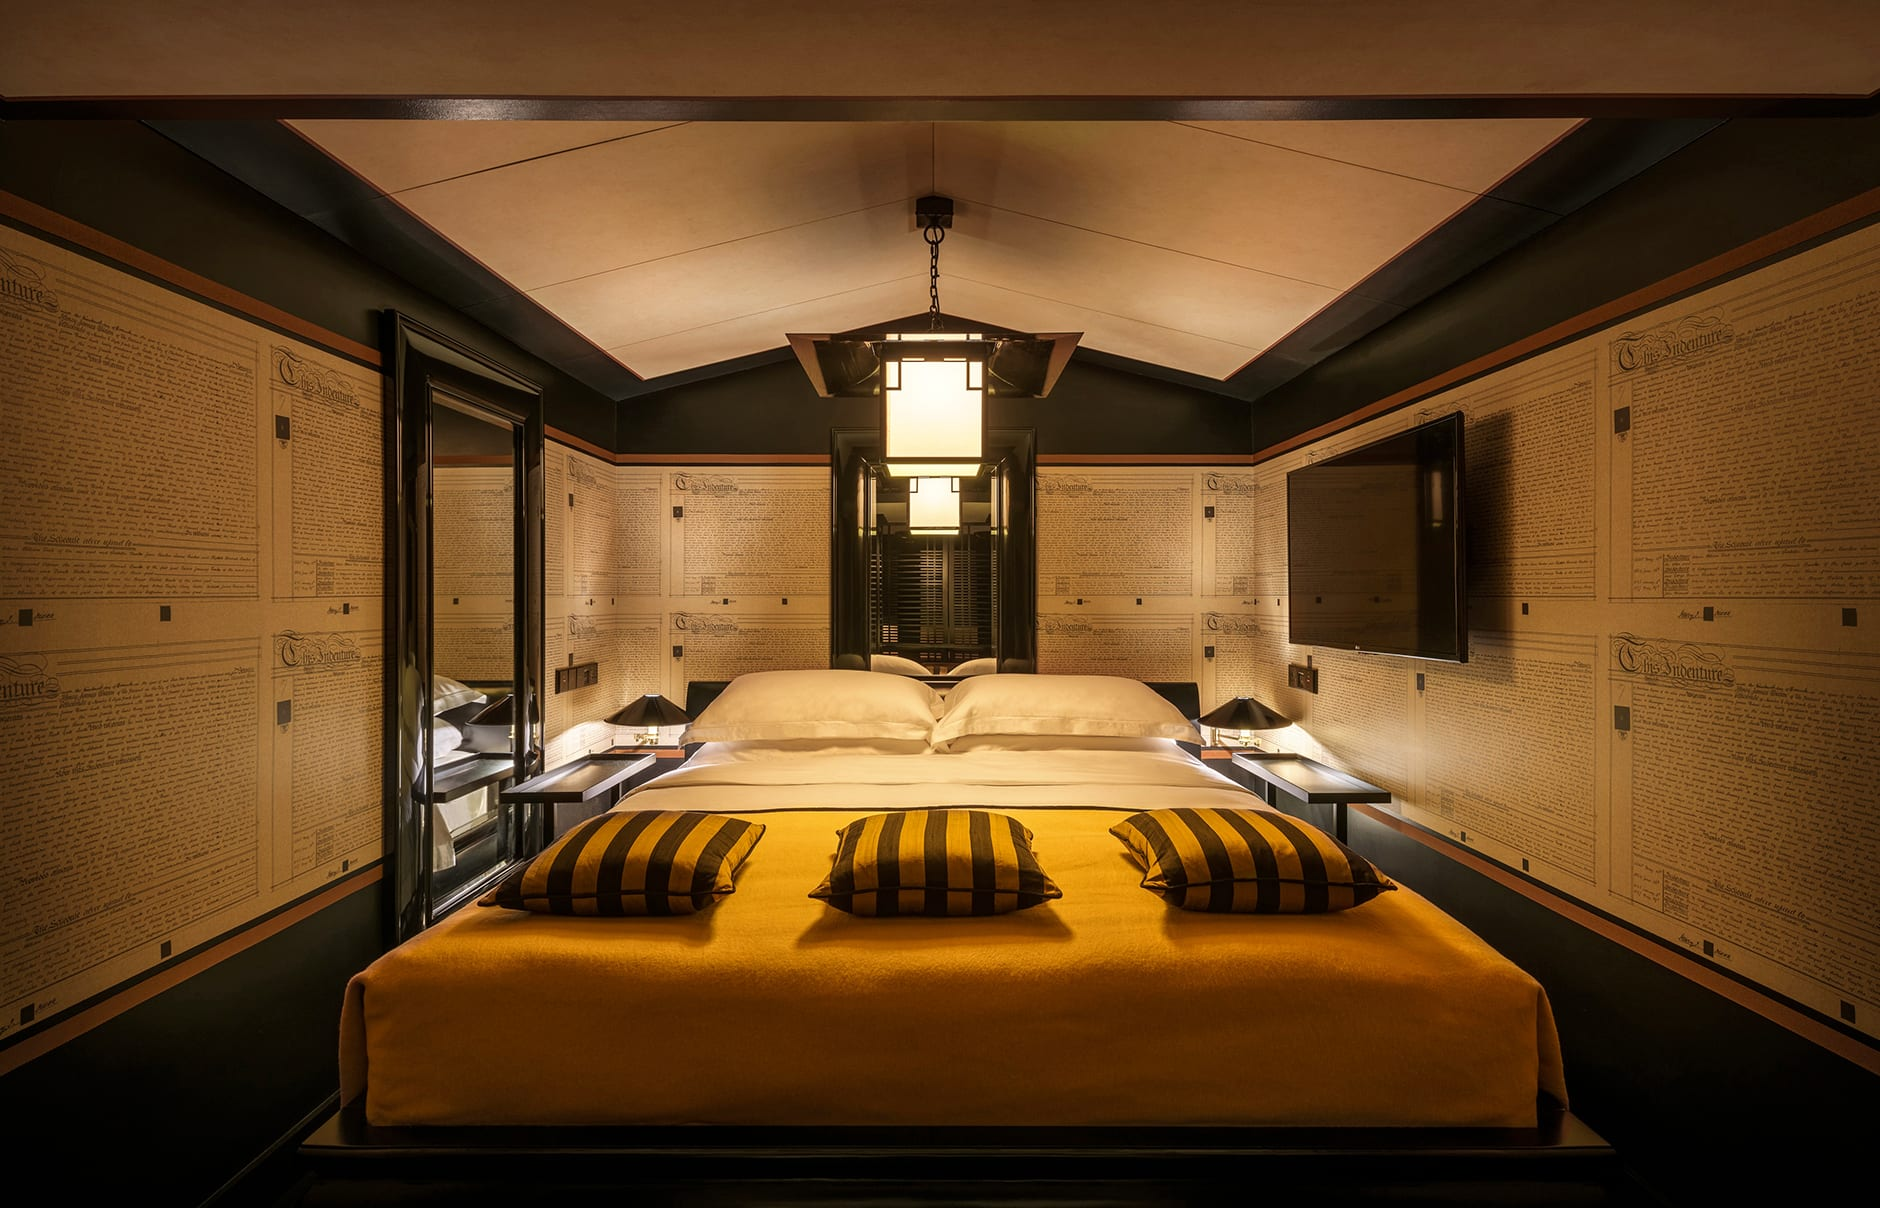 Six Senses Duxton, Singapore, Opium Suite bedroom. © Six Senses Hotels Resorts Spas